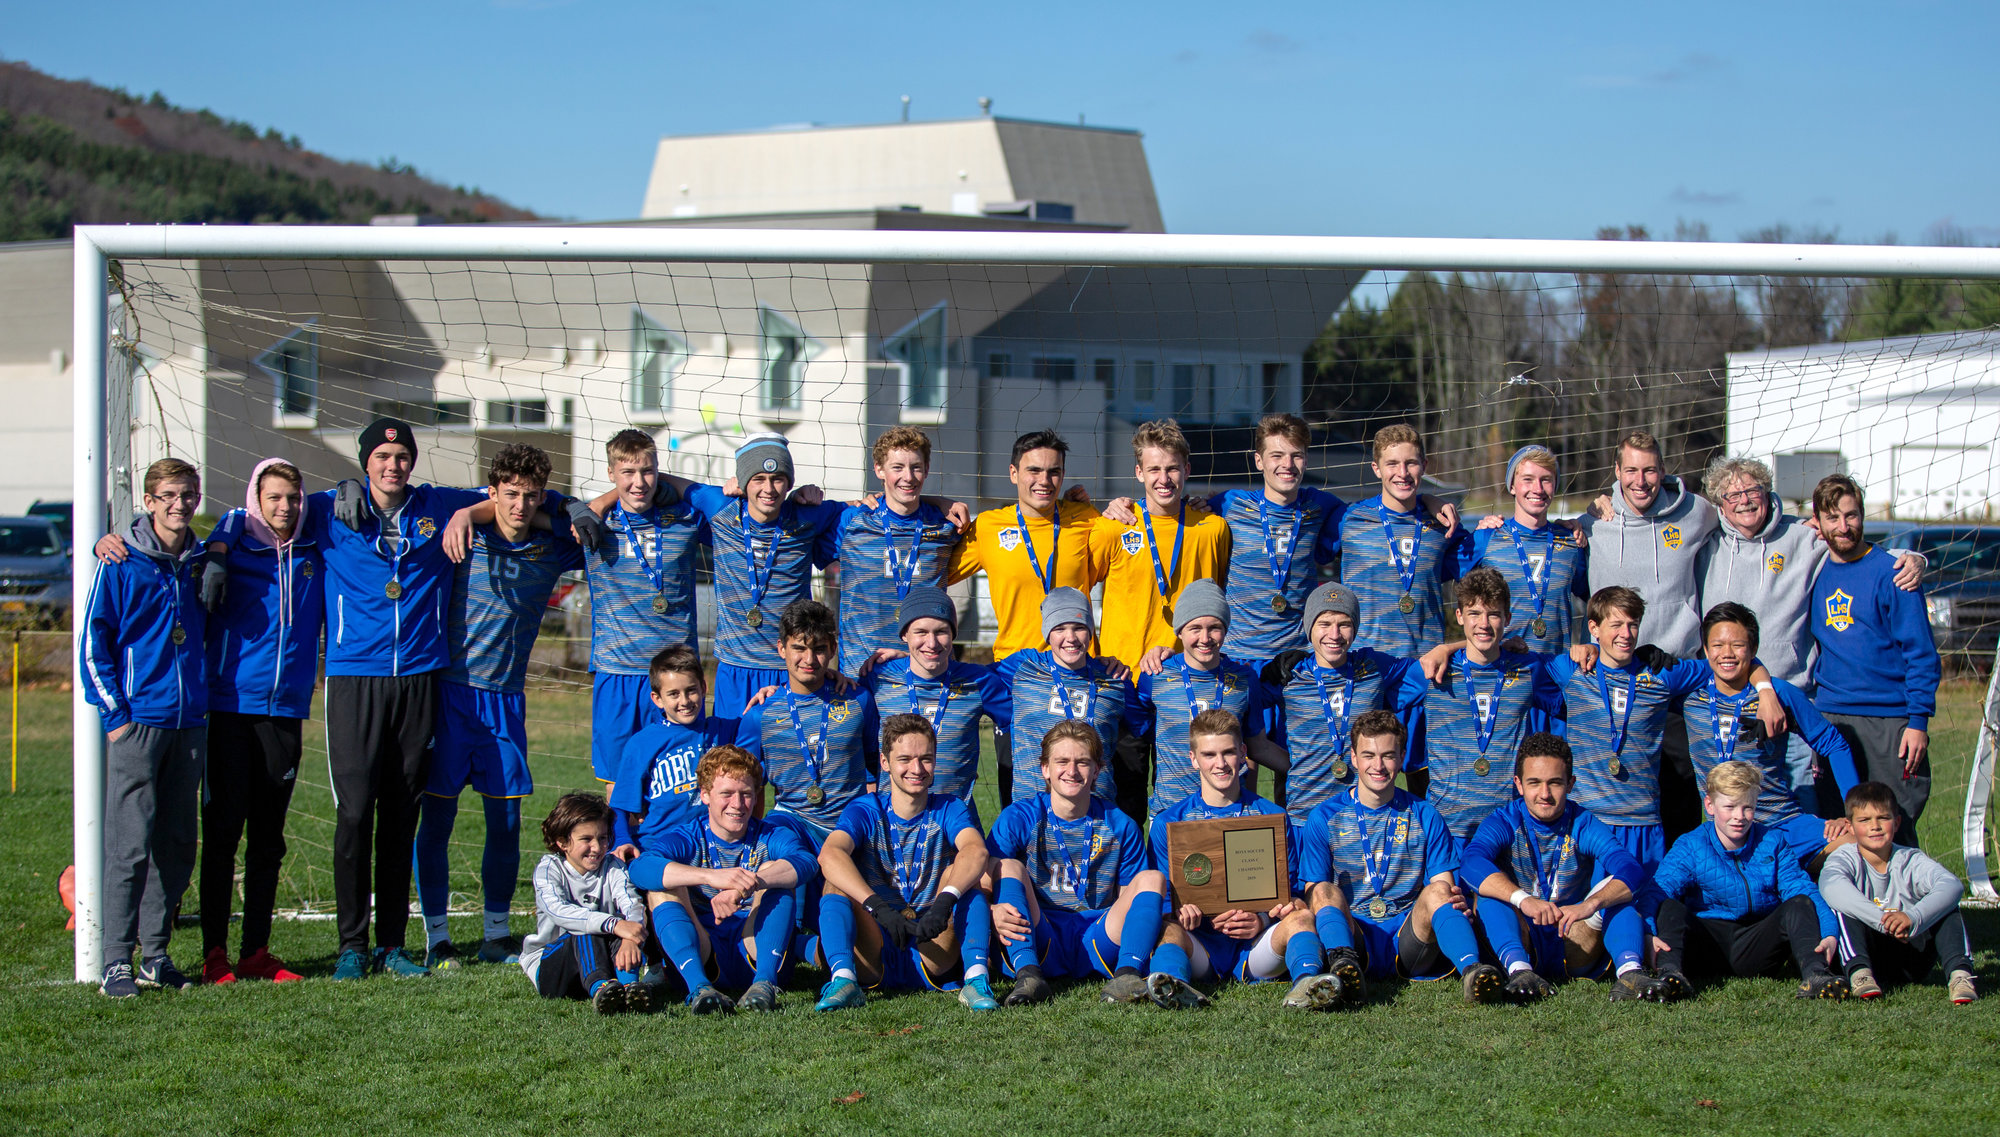 Lansing boys soccer celebrates its fourth consecutive Section IV title. The Bobcats were one of three Tompkins County boys teams to win sectional championships this year.